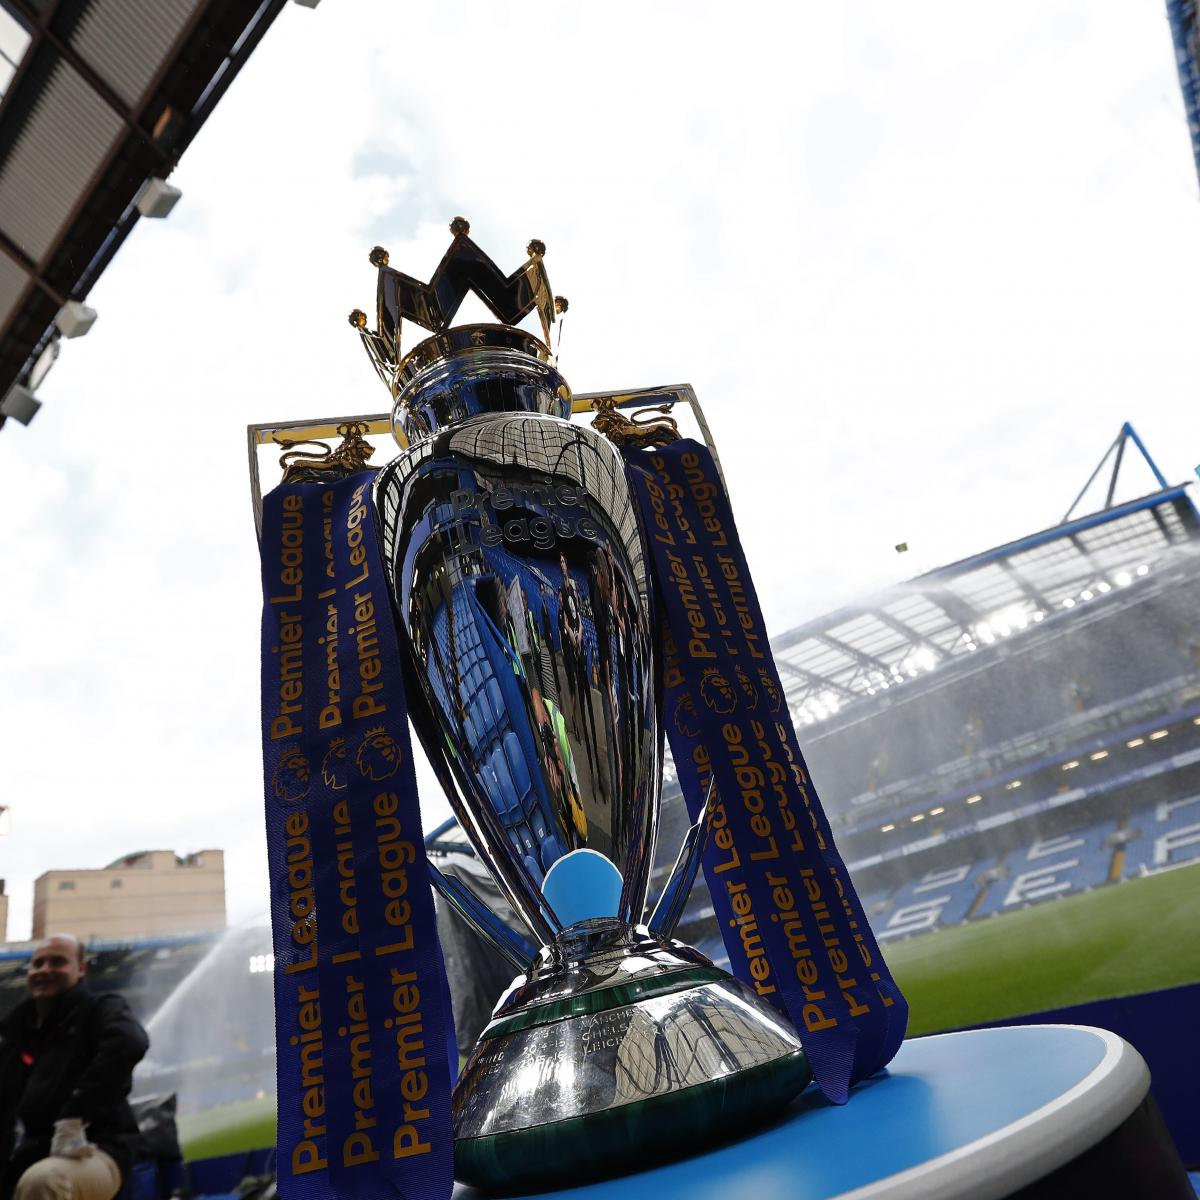 Premier League Announces Hall of Fame; First 2 Inductees to Be Revealed March 19